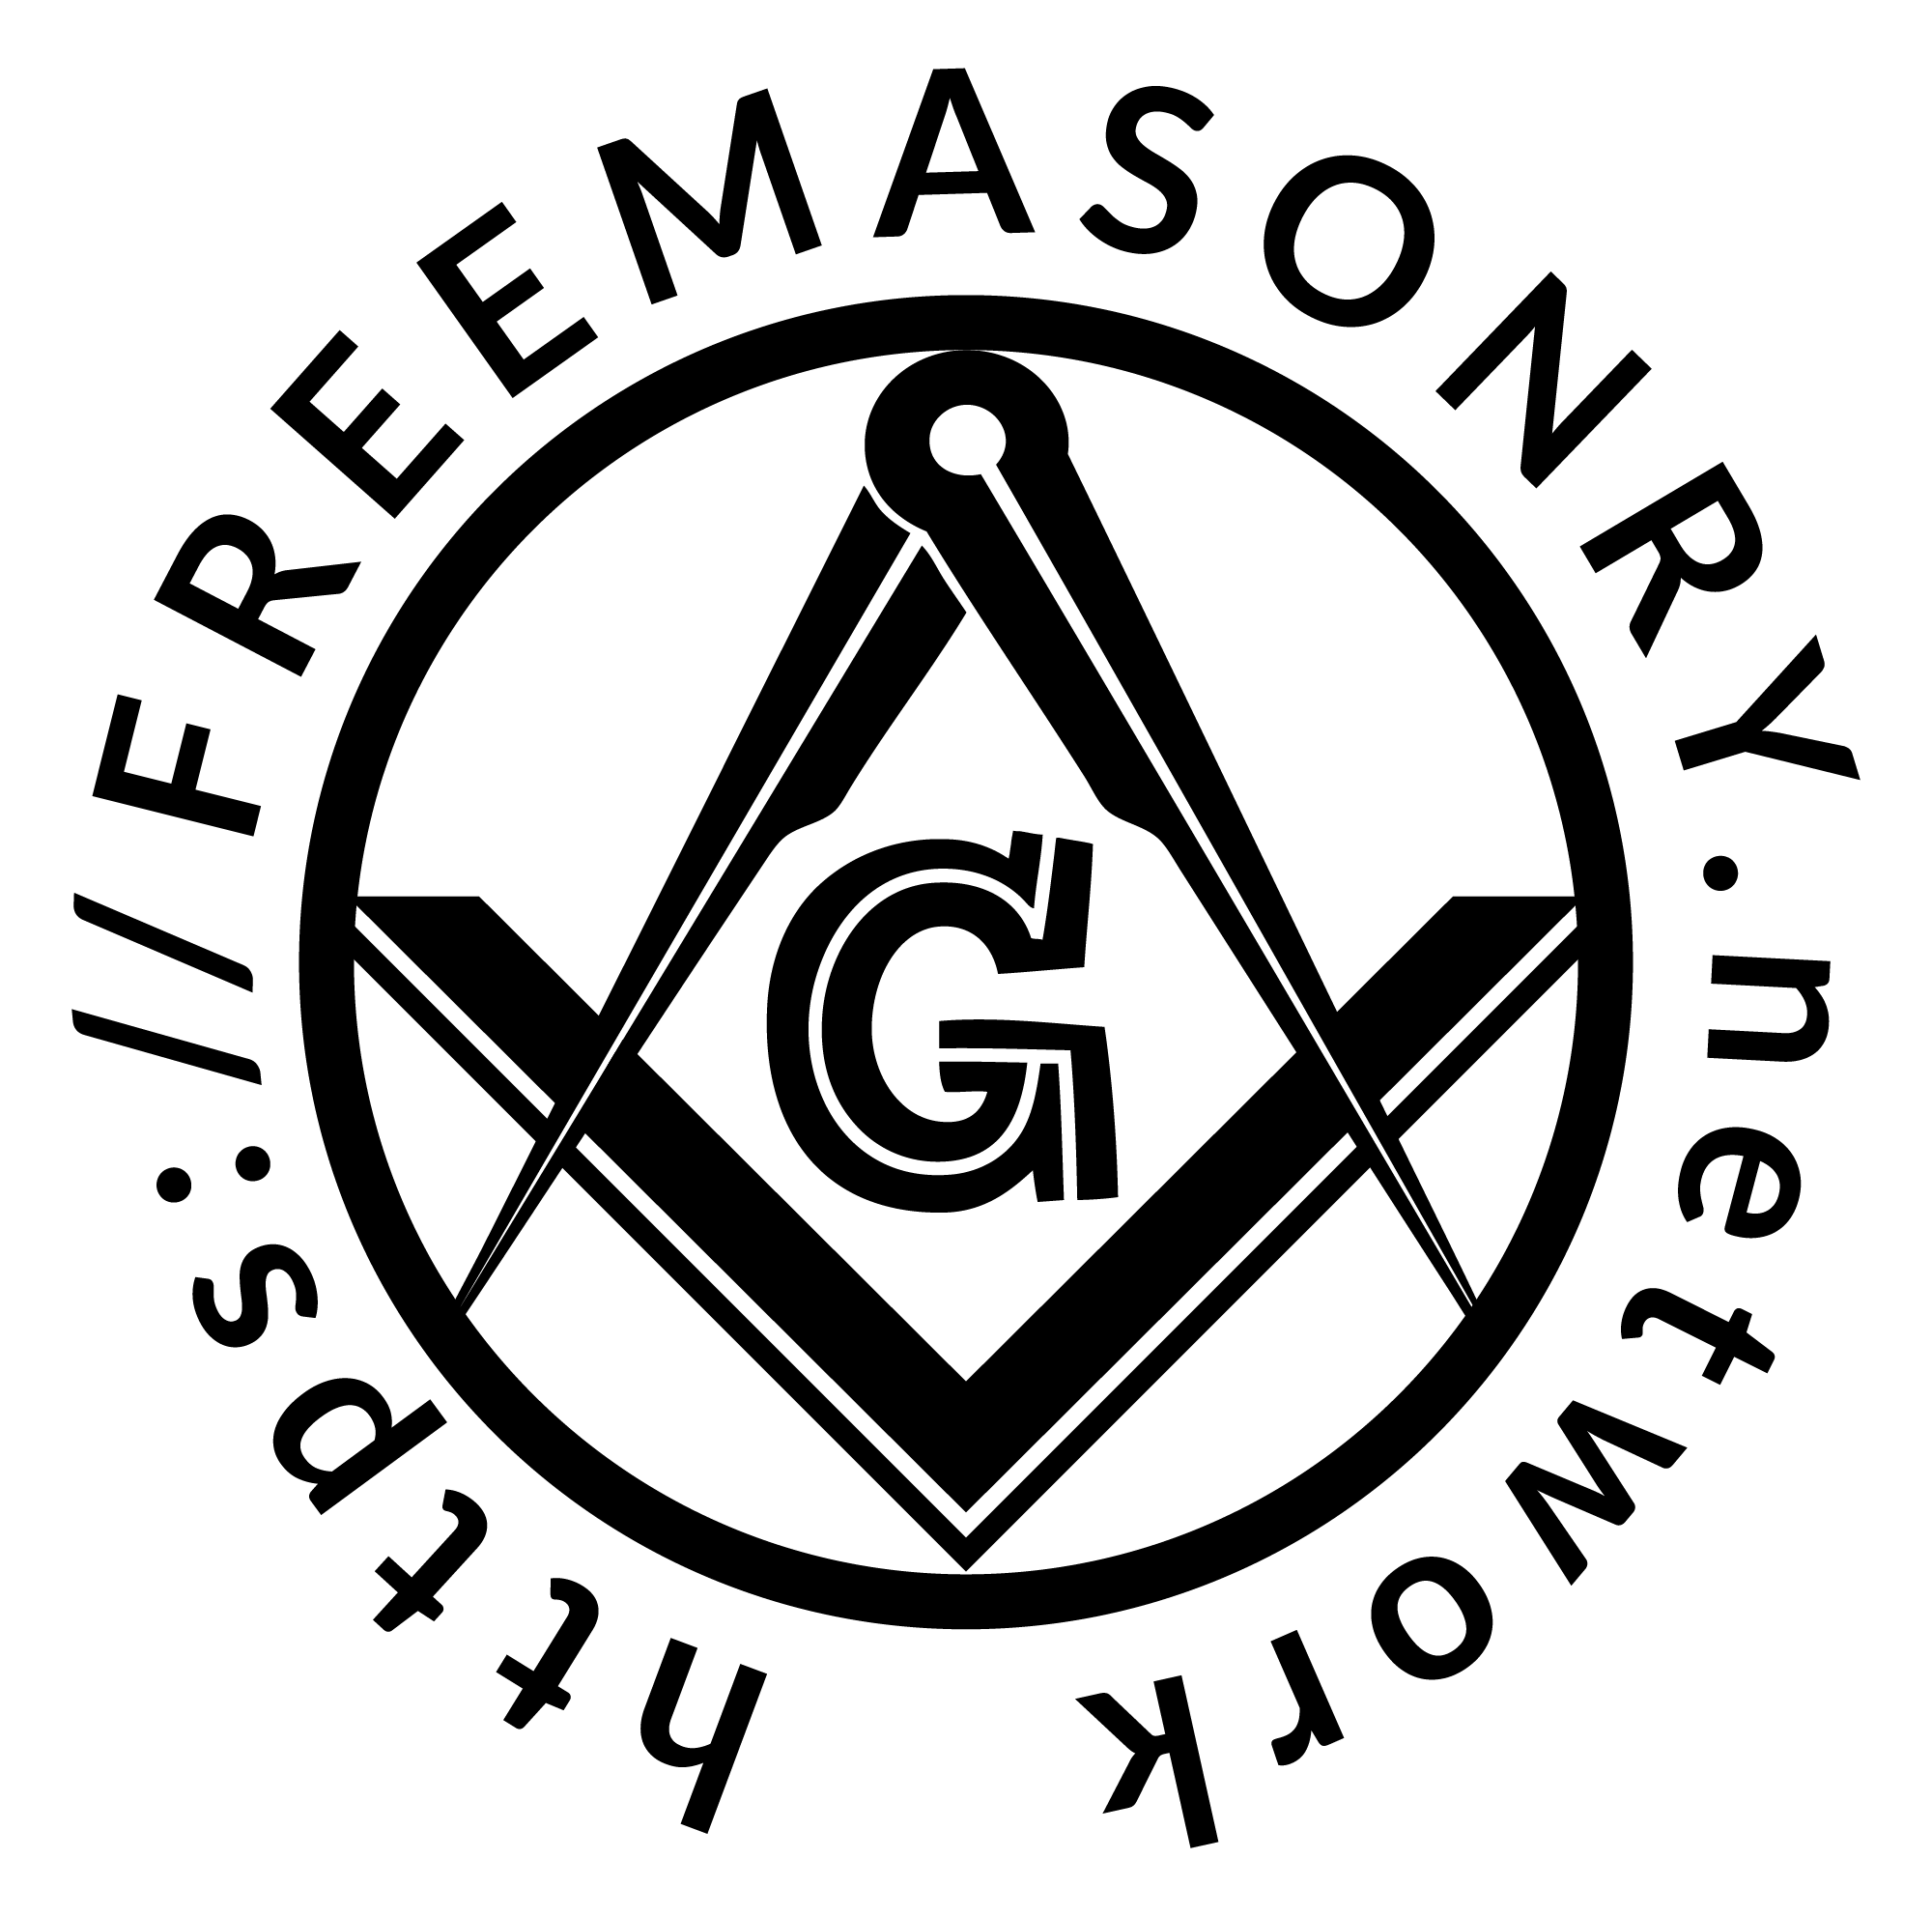 MASONIC OBEDIENCE